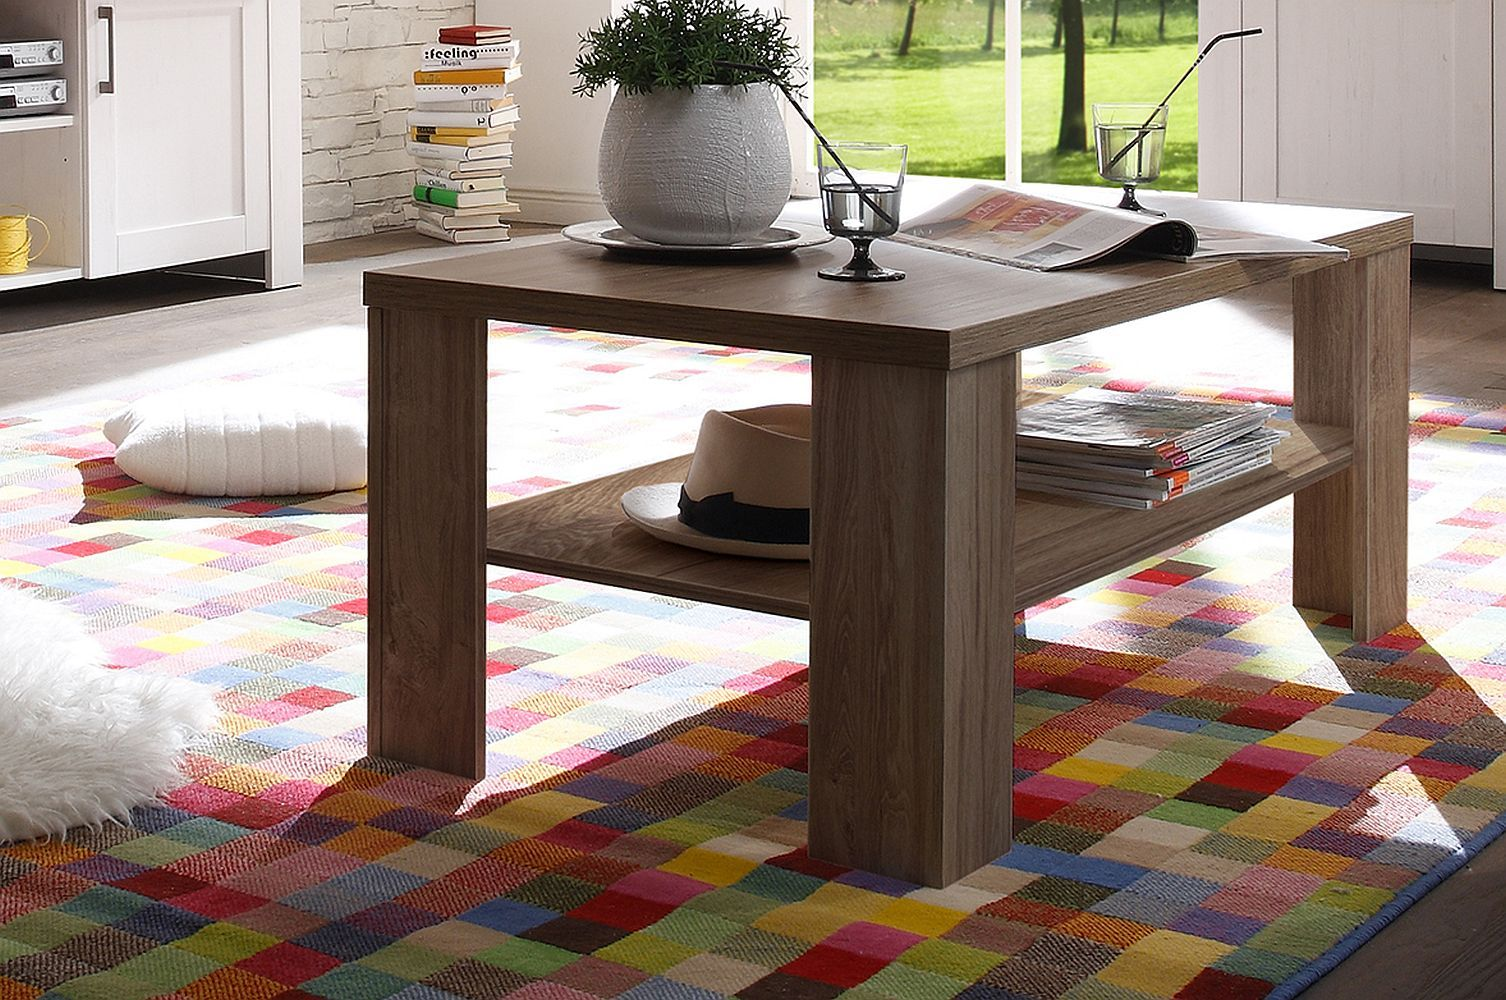 Country Couchtisch 0671/110-N stirling oak